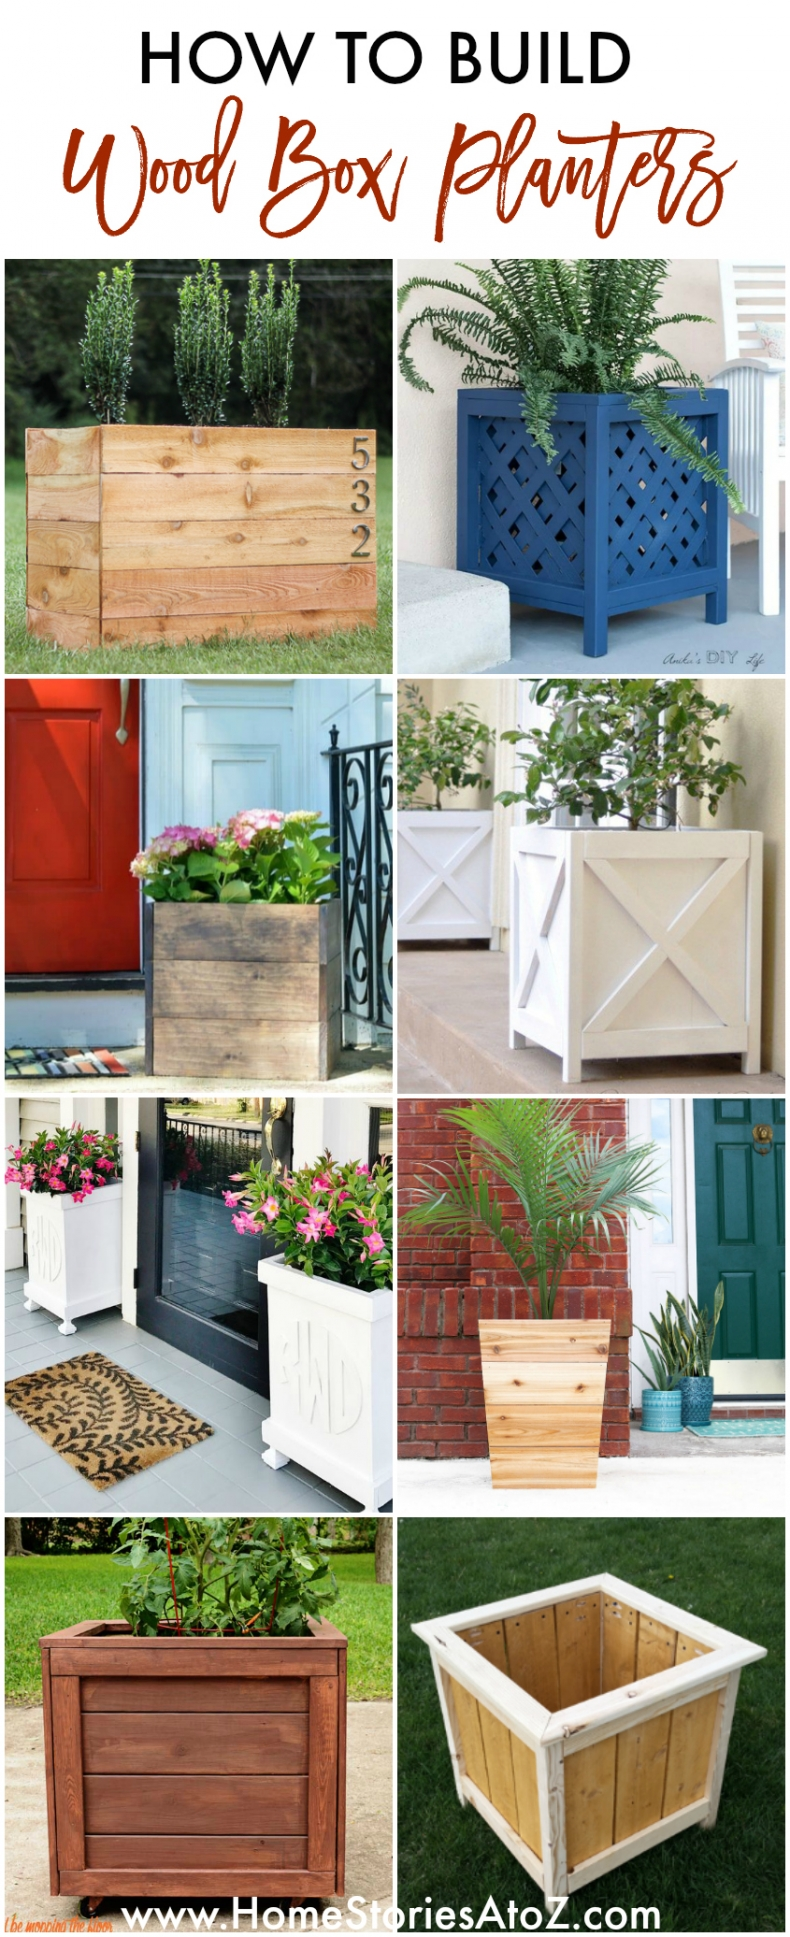 How to Build Wood Box Planters - Great Tutorials and Ideas - Home Stories A to Z